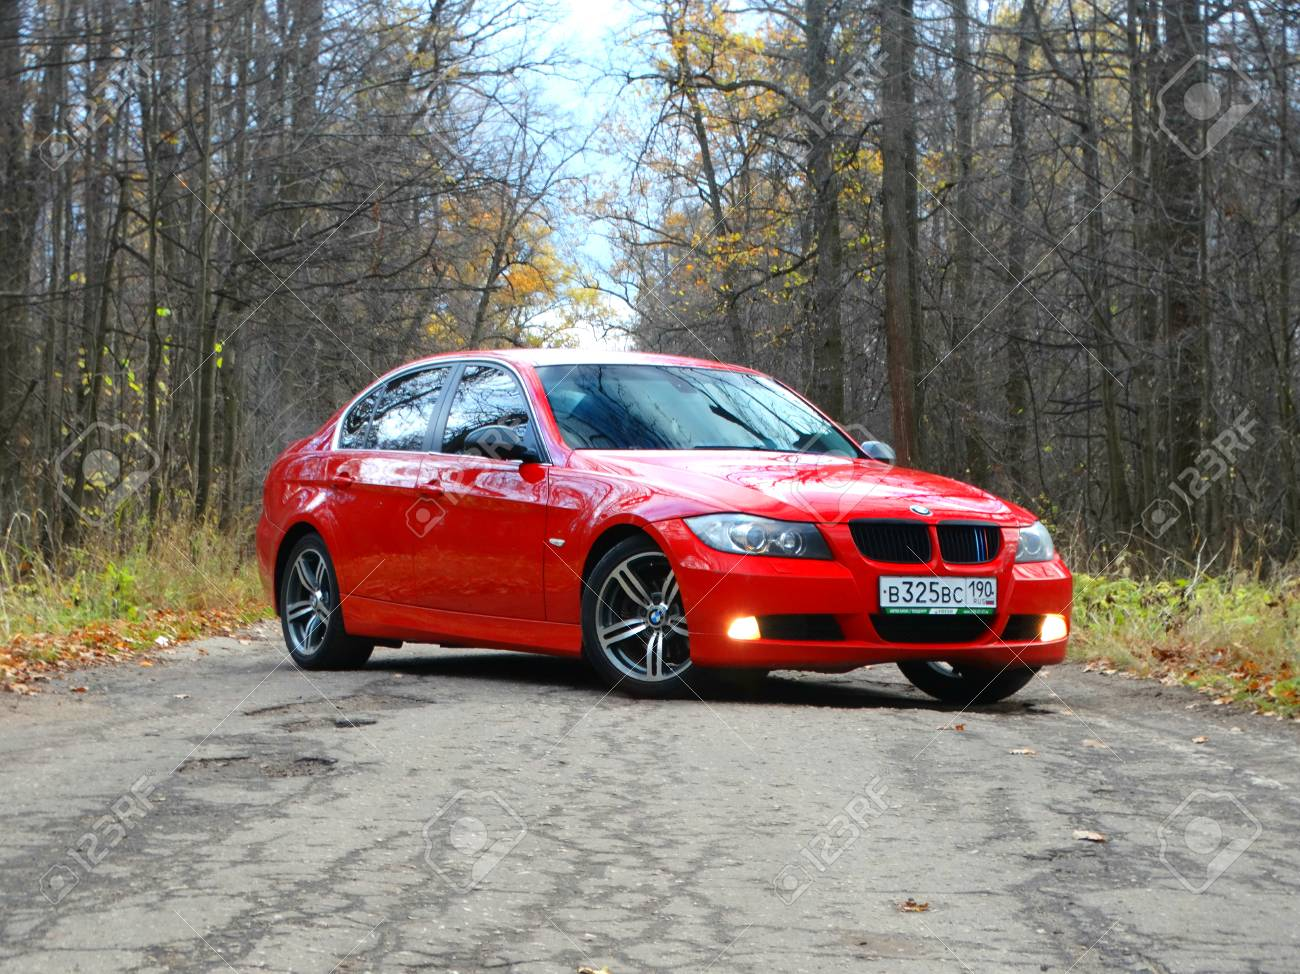 Bmw 3 Series E90 Departure Outside The City Car Auto Red Road